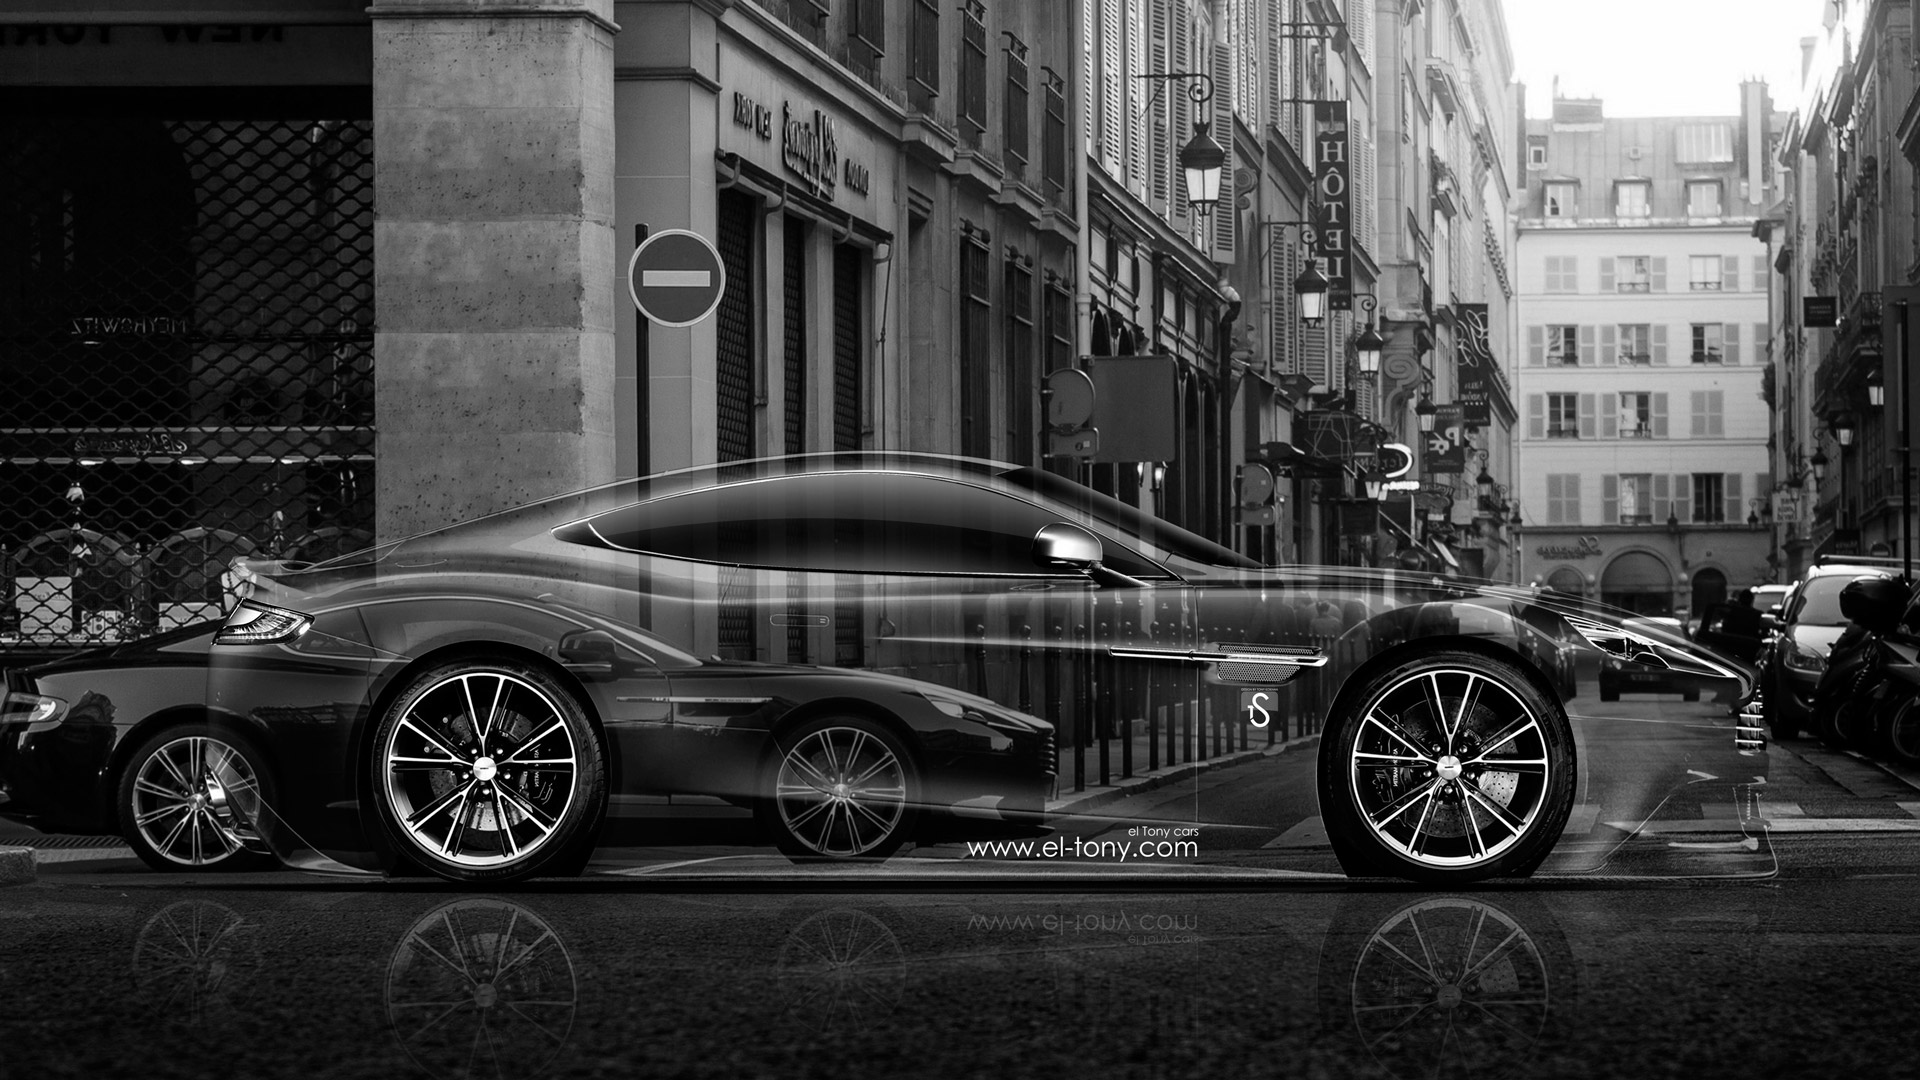 Exceptional Aston Martin Vanquish Side Crystal City Car 2014